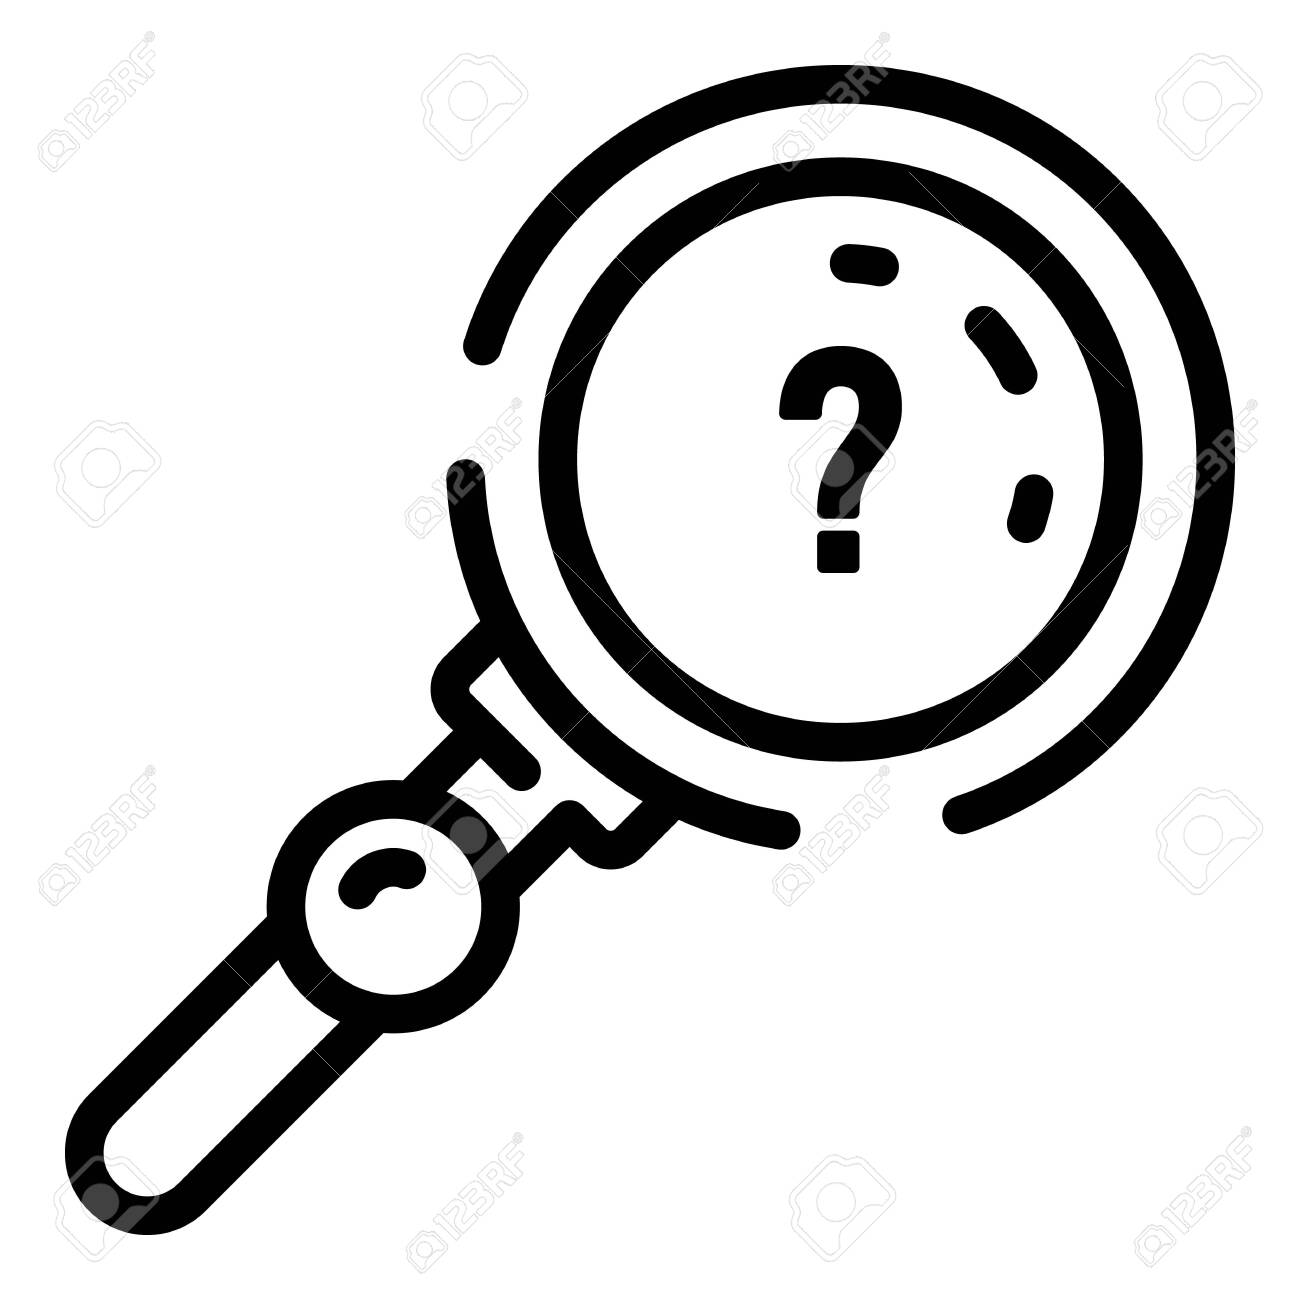 Quest question magnify glass icon, outline style - 128640934